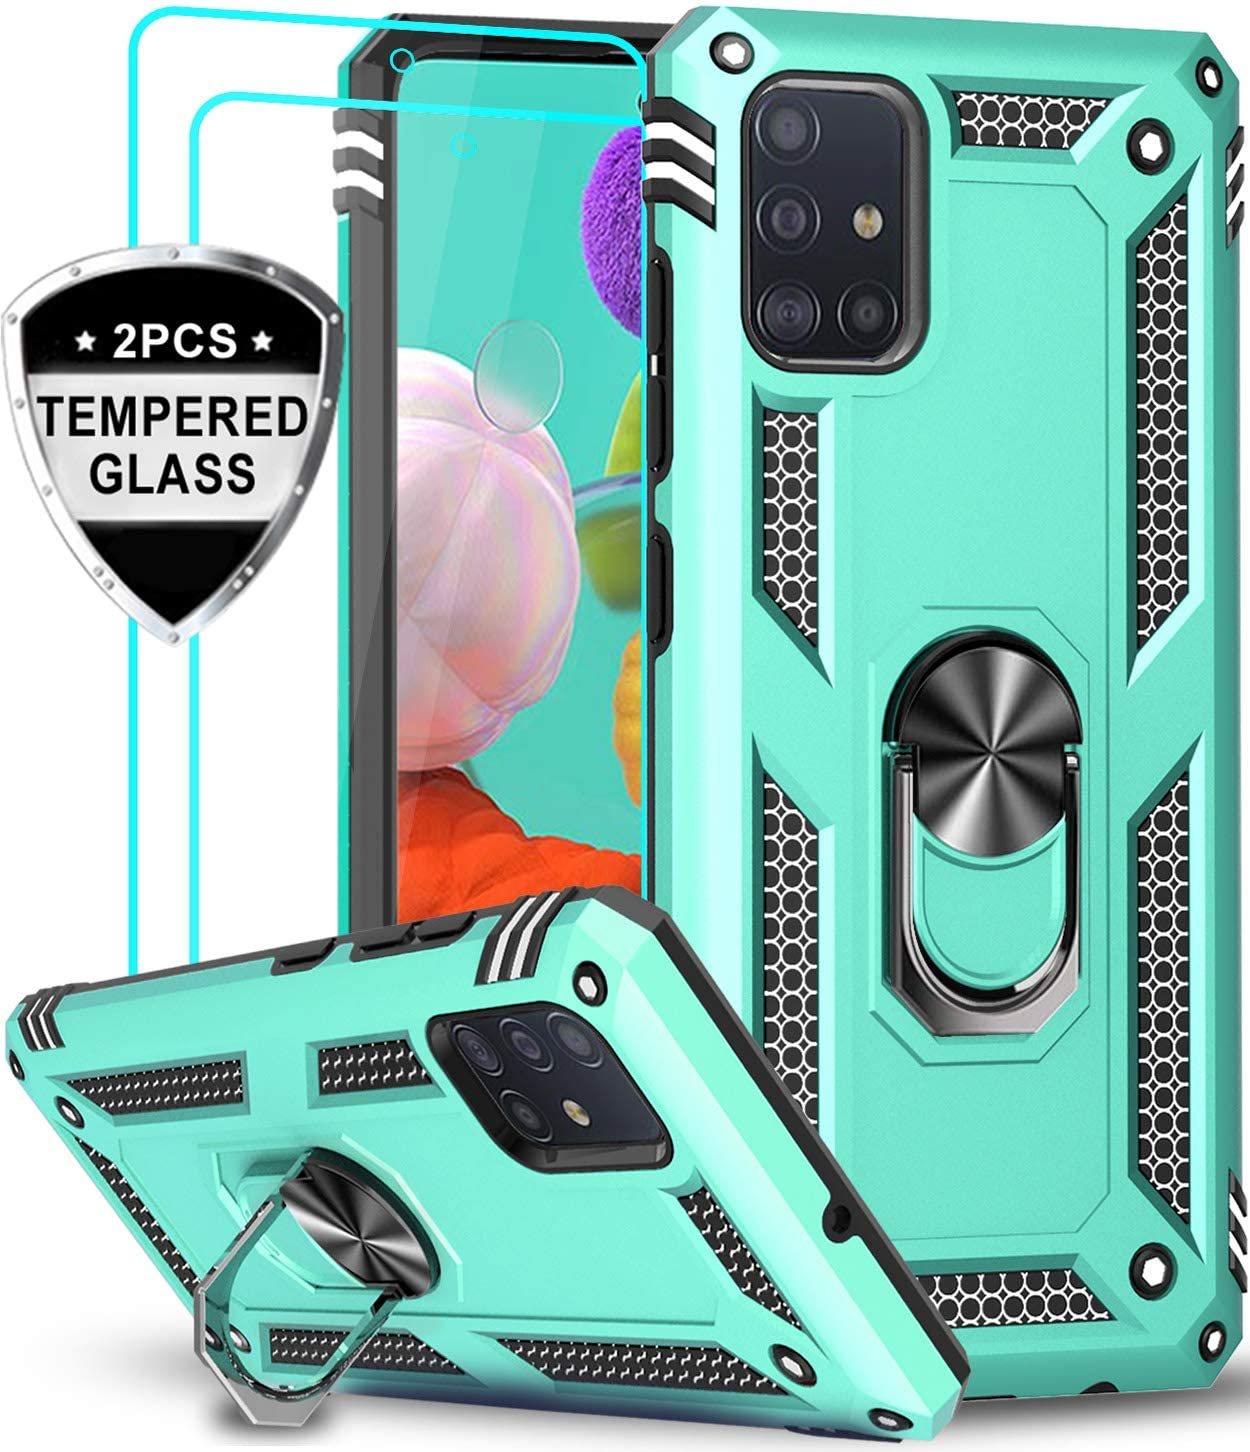 LeYi Samsung Galaxy A51 Case (Not Fit A51 5G) with Tempered Glass Screen Protector [2 Pack], [Military Grade] Defender Protective Phone Case with Car Ring Holder Kickstand for Samsung A51, Mint